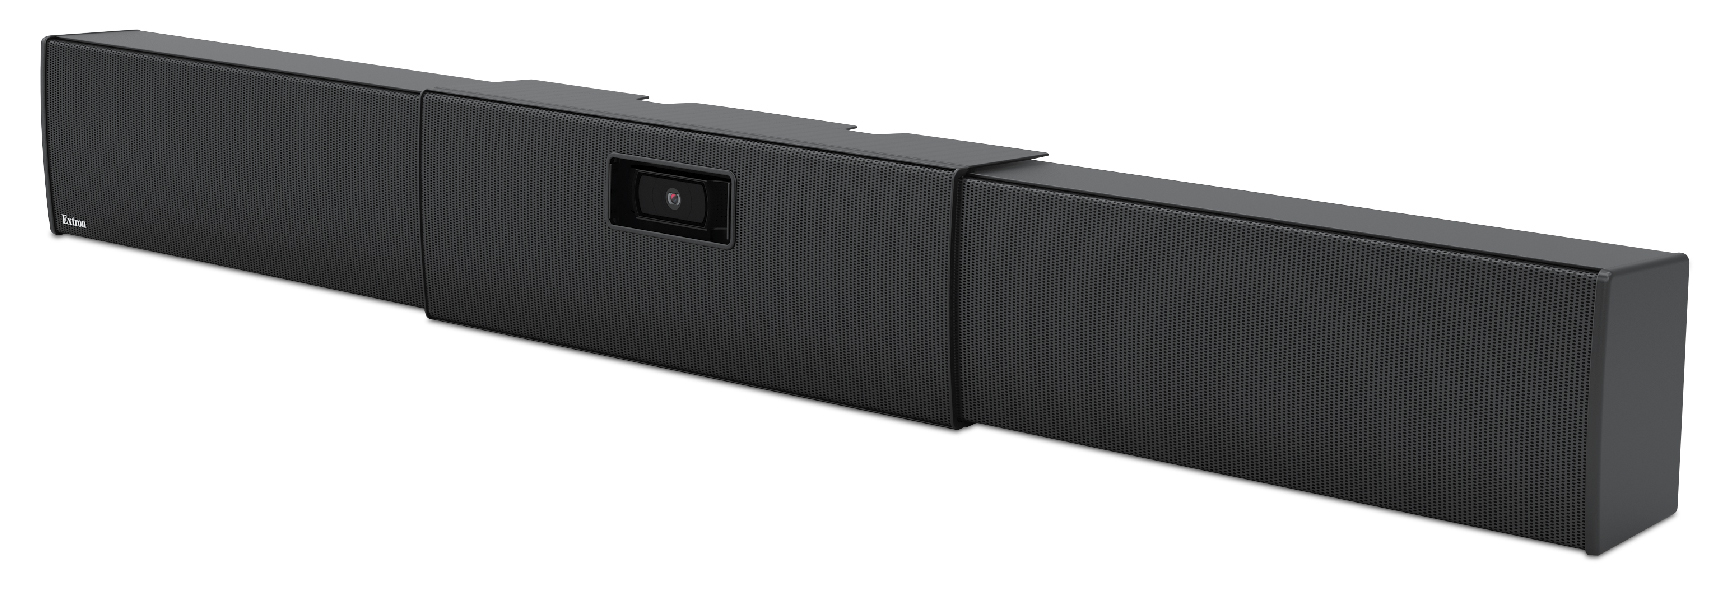 SB 33 A<br>Adjustable Width Powered Sound Bar<br>Camera not included